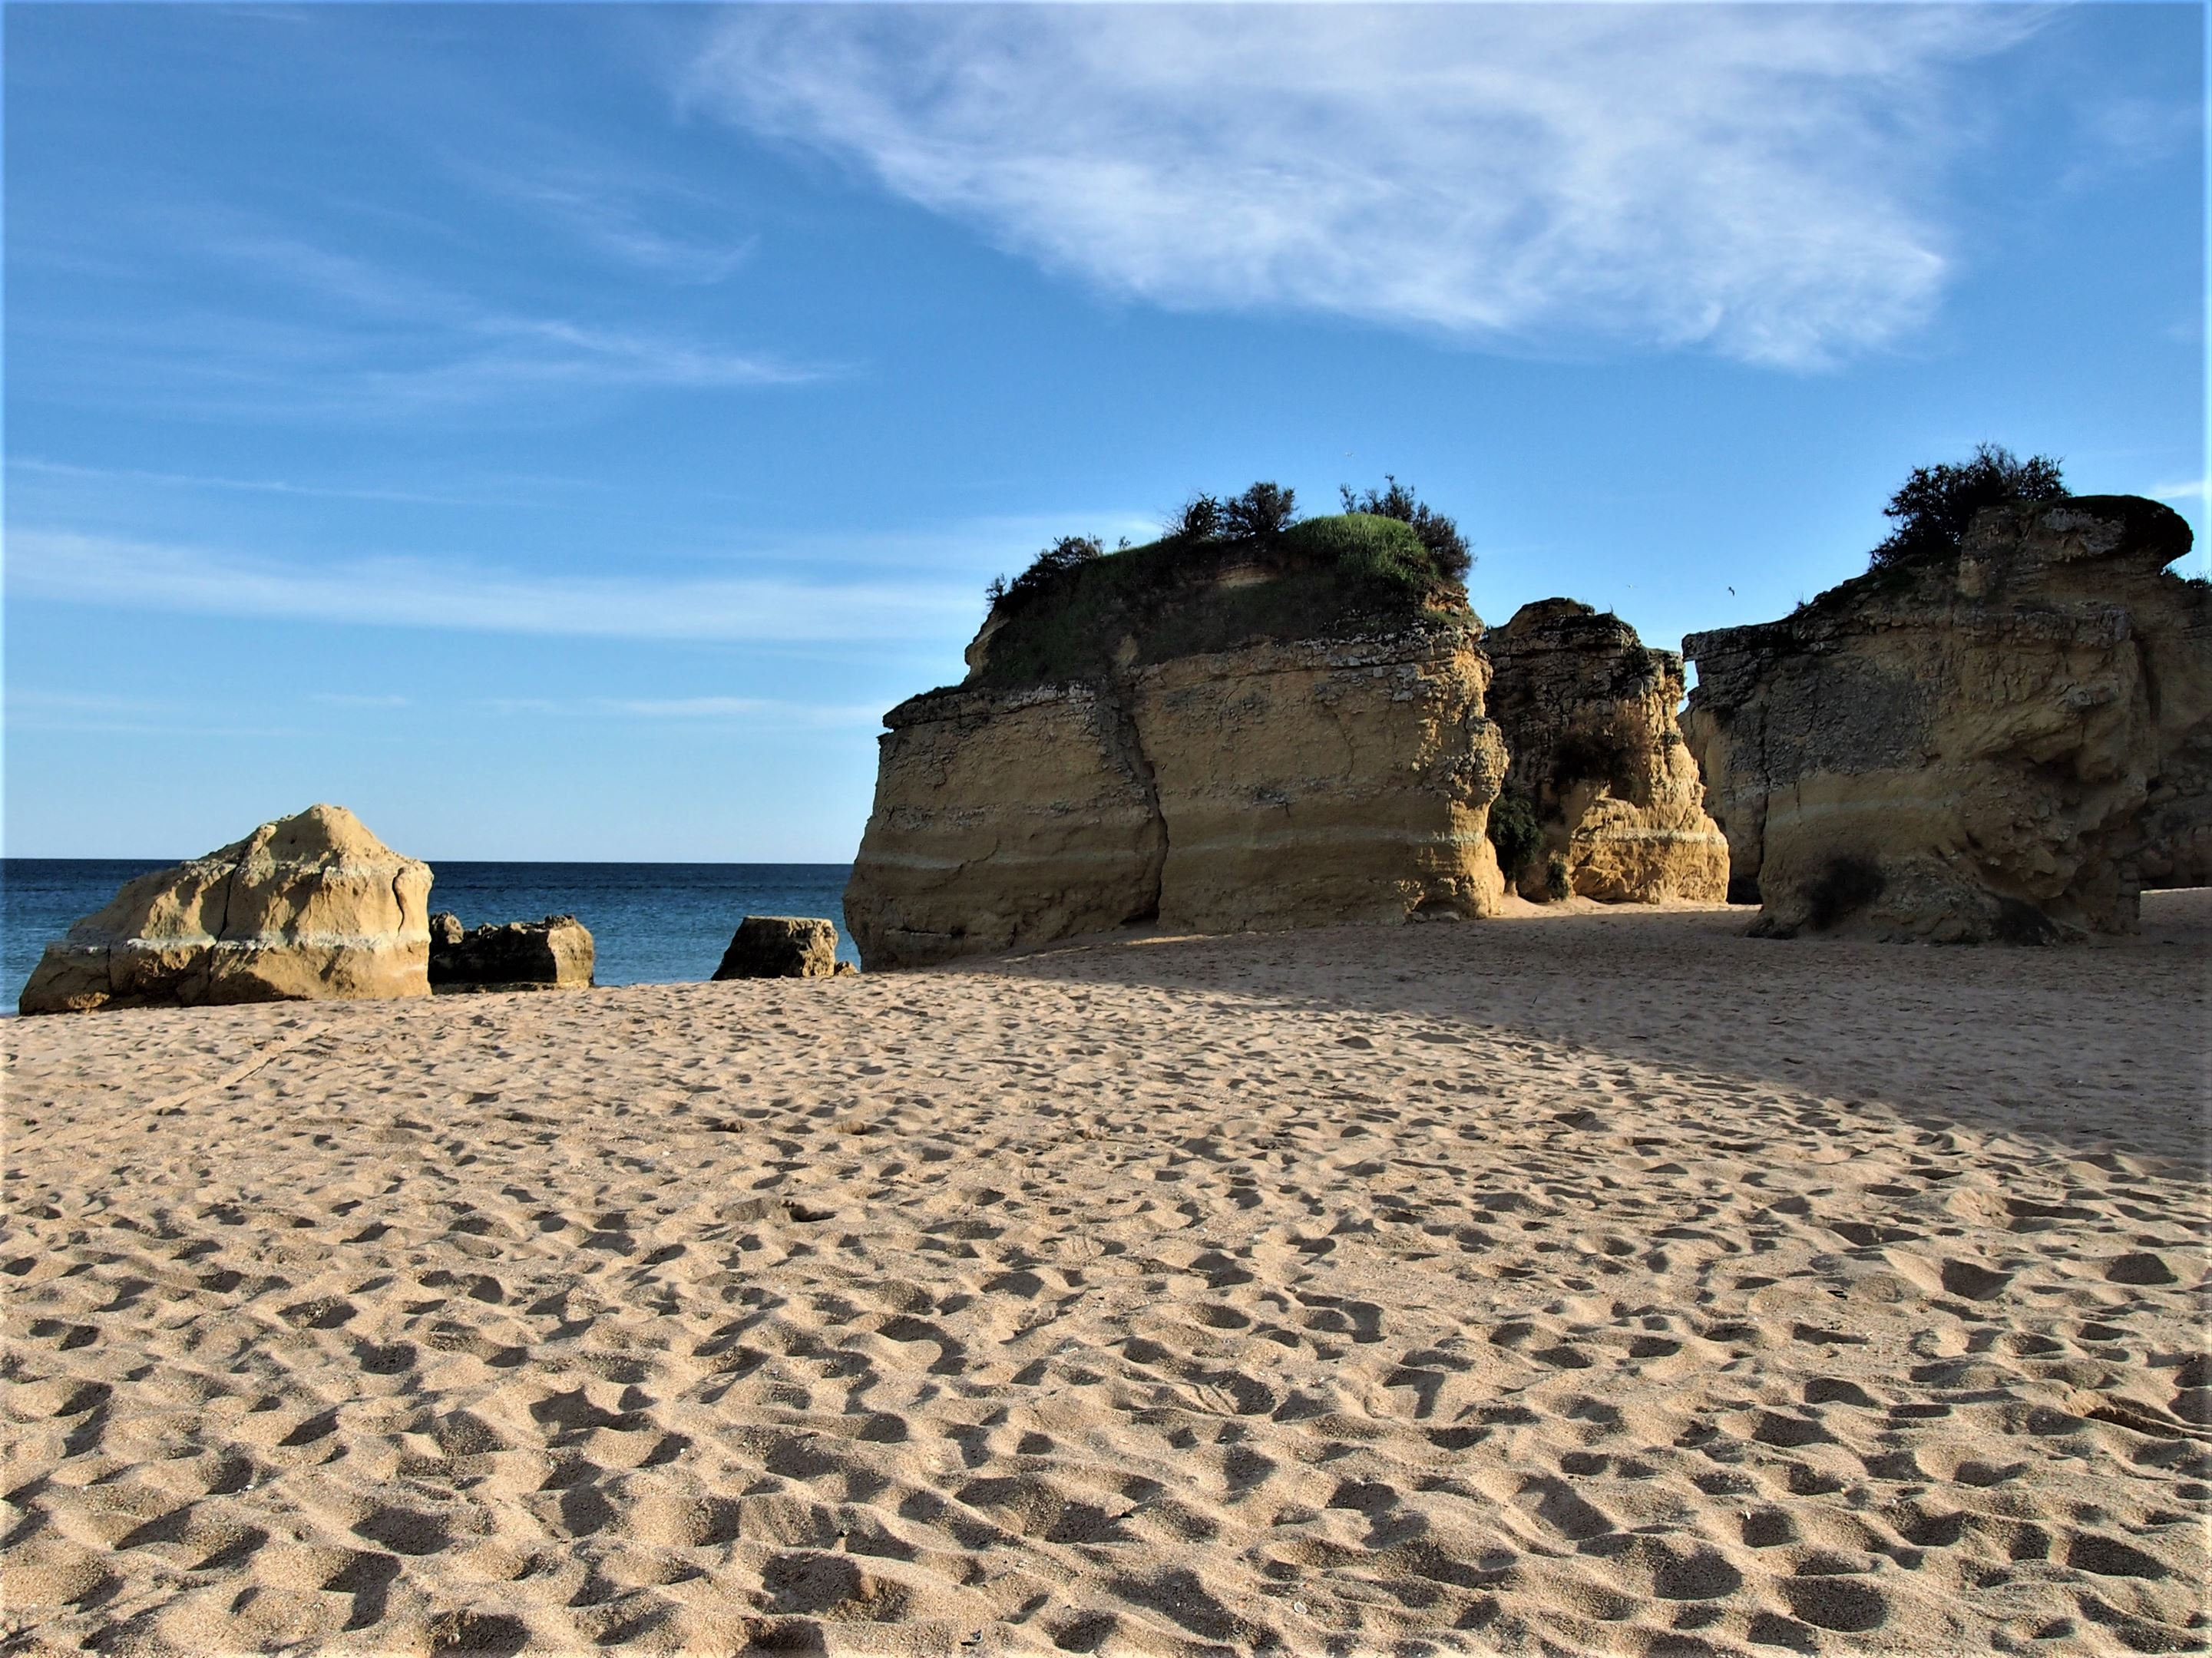 Praia da Batata, the nearest beach from the centre of Lagos